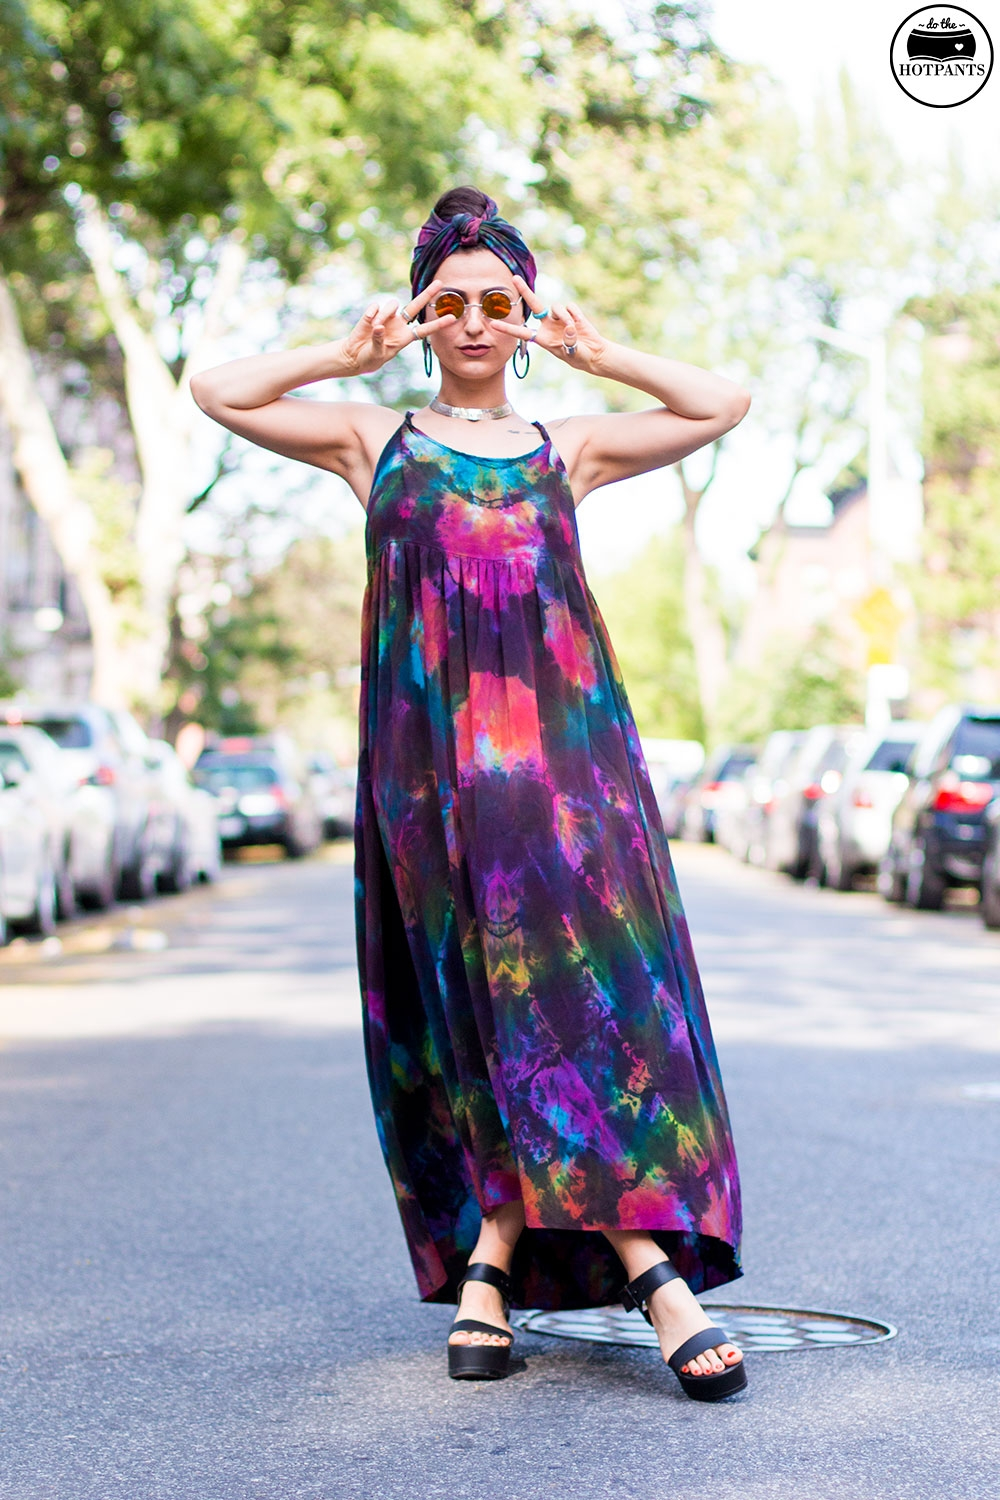 Do The Hotpants Dana Suchow Tie Dye Dress Maxi Flowy Summer Dress Tiedye Headwrap Turban Fashion IMG_9730